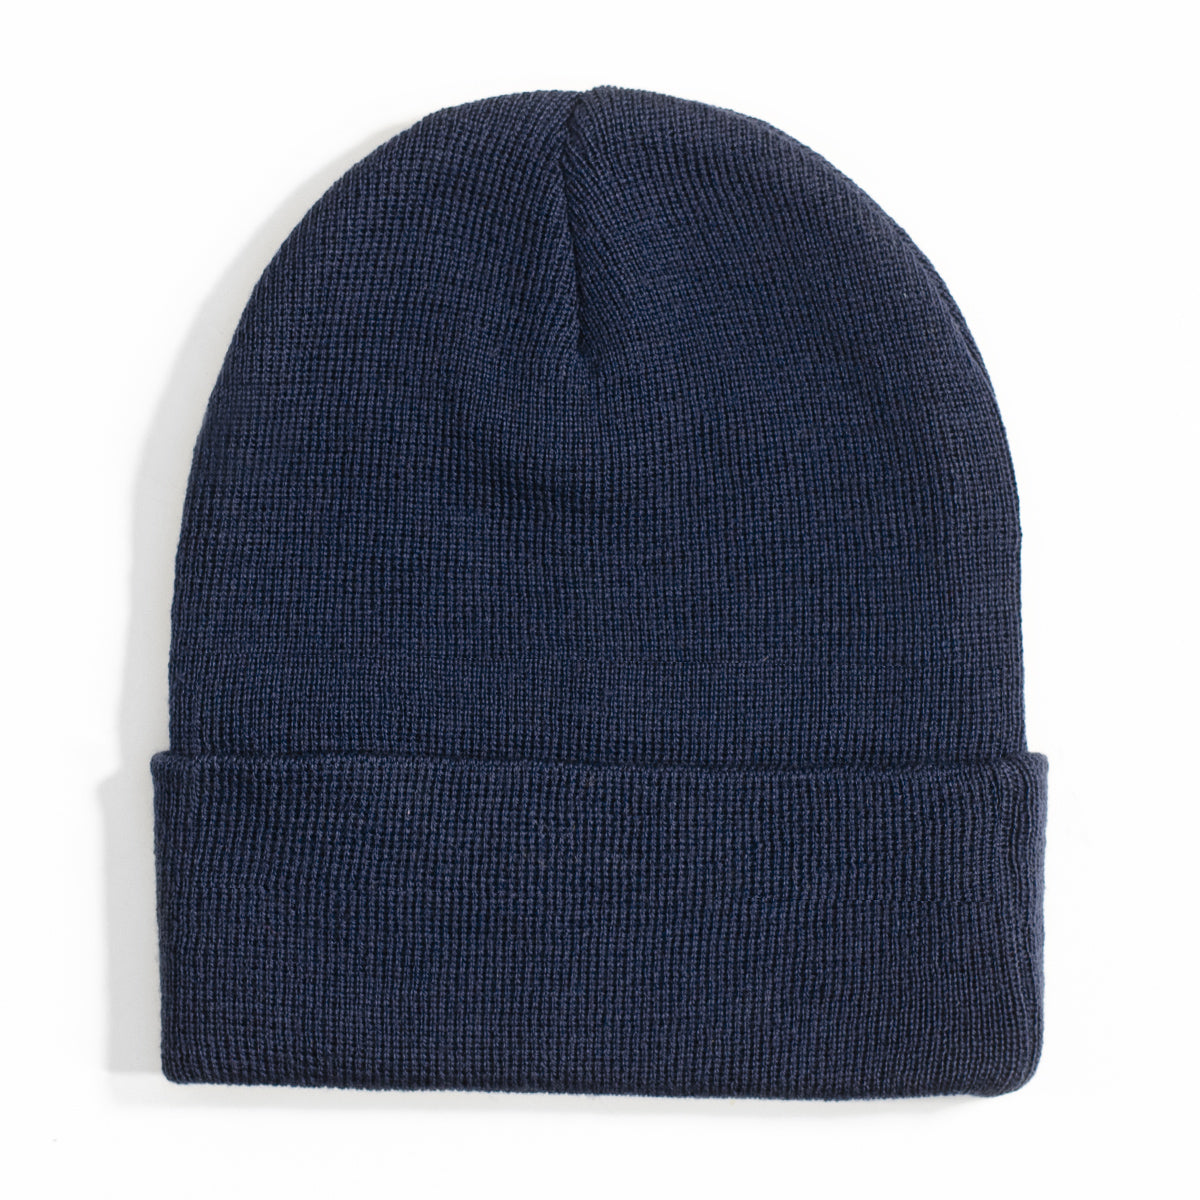 Lost Art Canada - blue wool winter toque back view